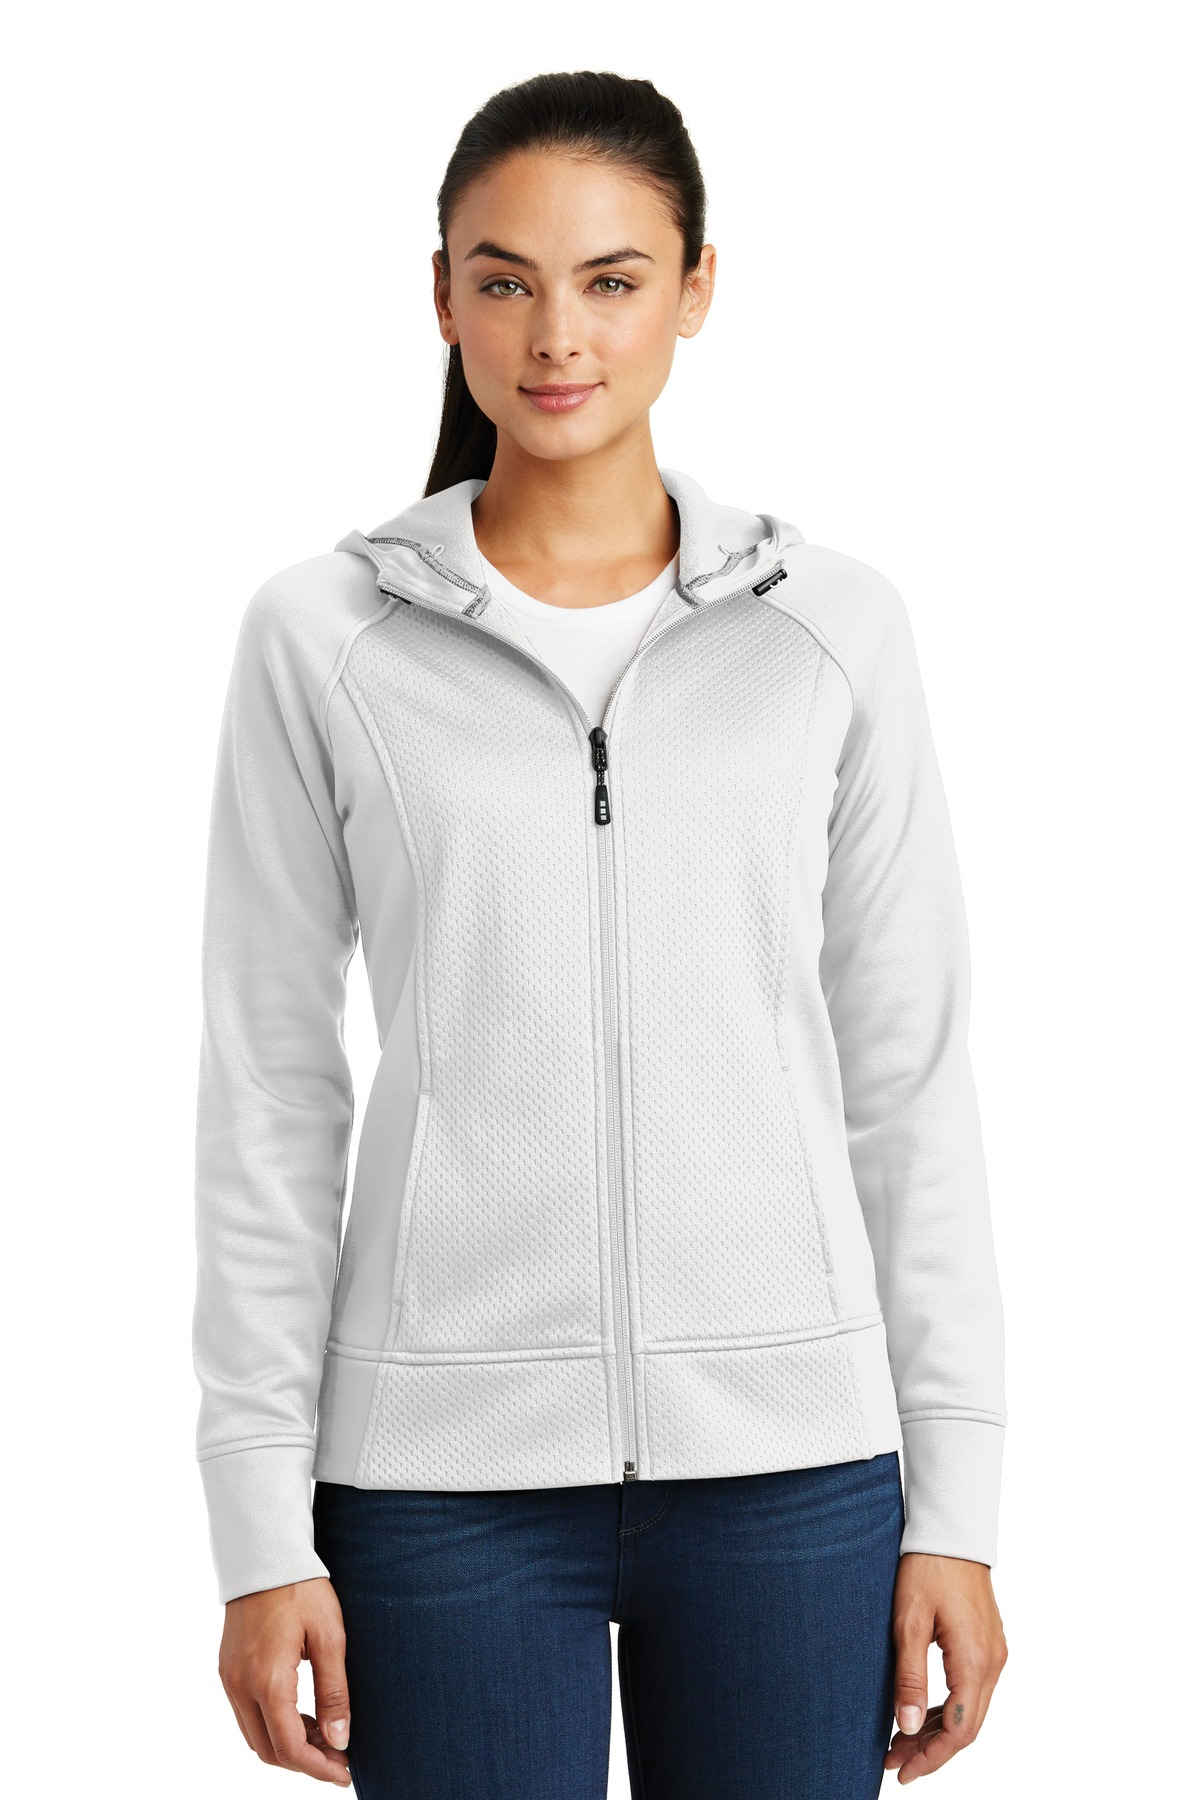 Sport-Tek ®  Ladies Rival Tech Fleece Full-Zip Hooded Jacket. LST295 - White